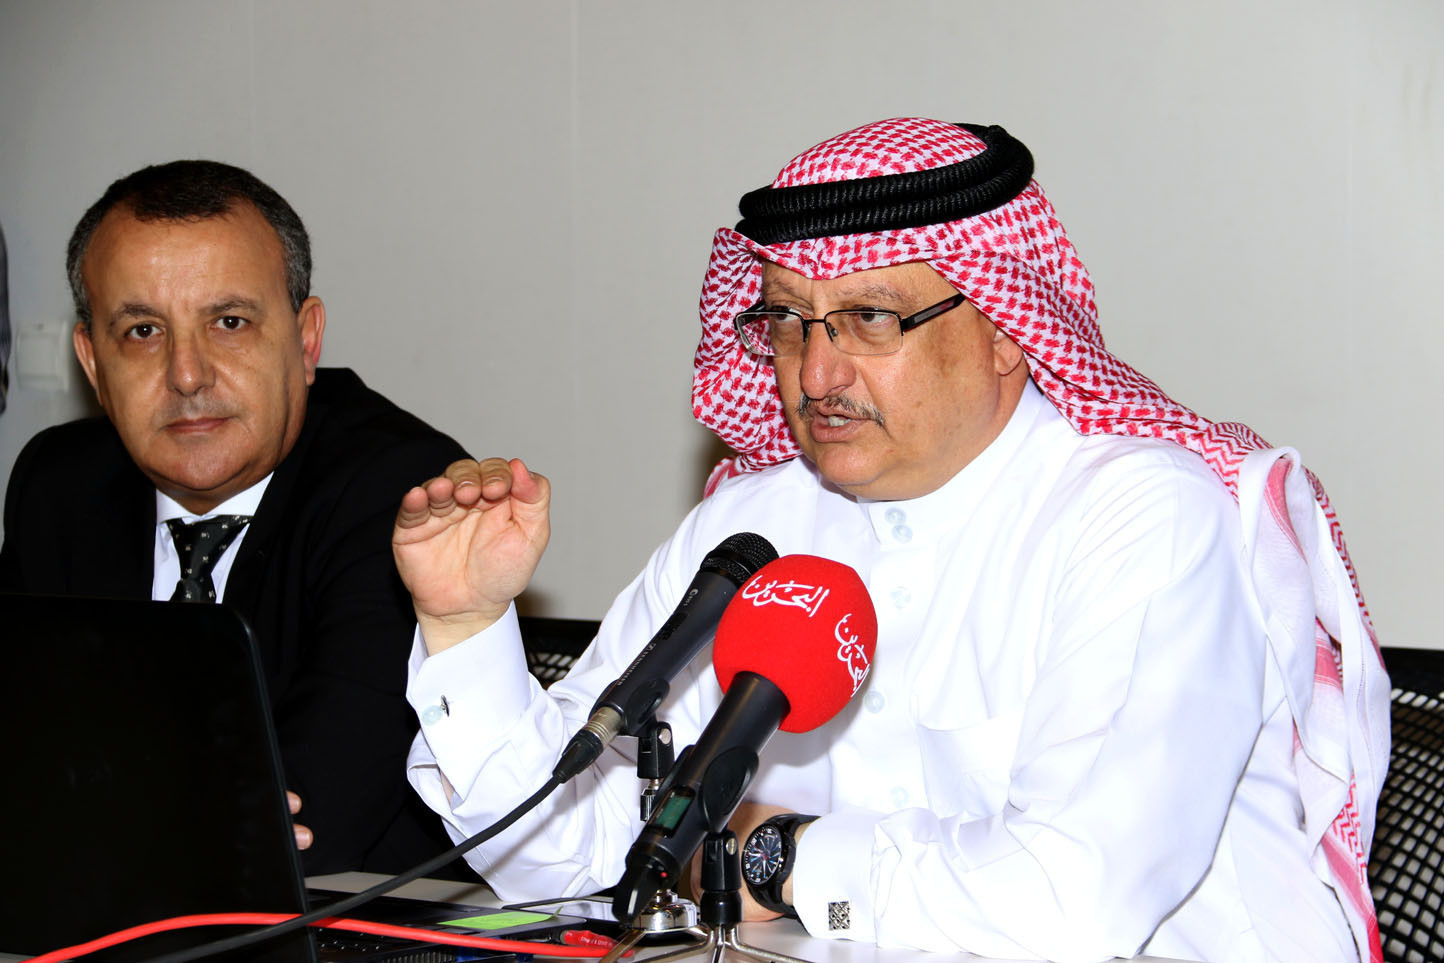 The Bahrain Olympic Committee general secretary Abdulrahman Askar addresses a meeting on the Baby Games ©Getty Images